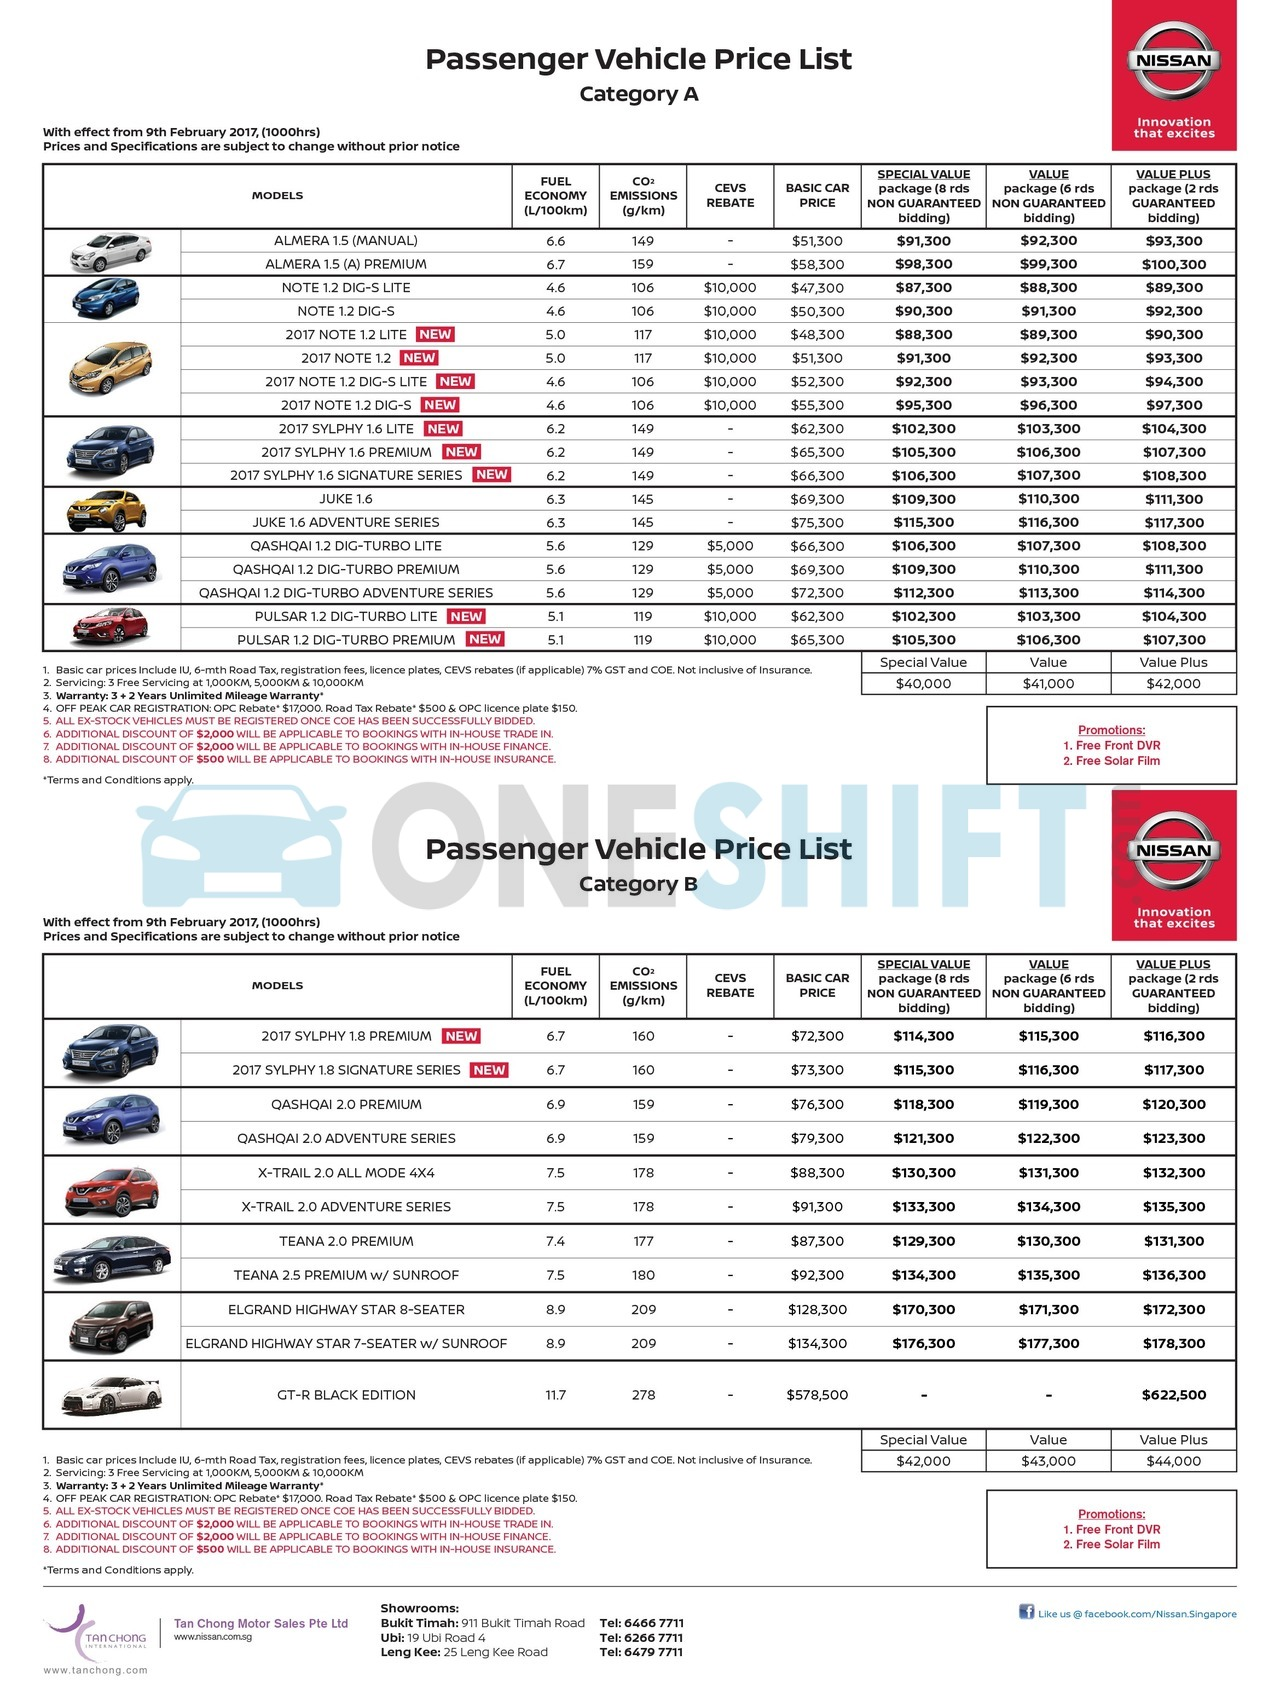 nissan Price List 2-9-2017 Page 1